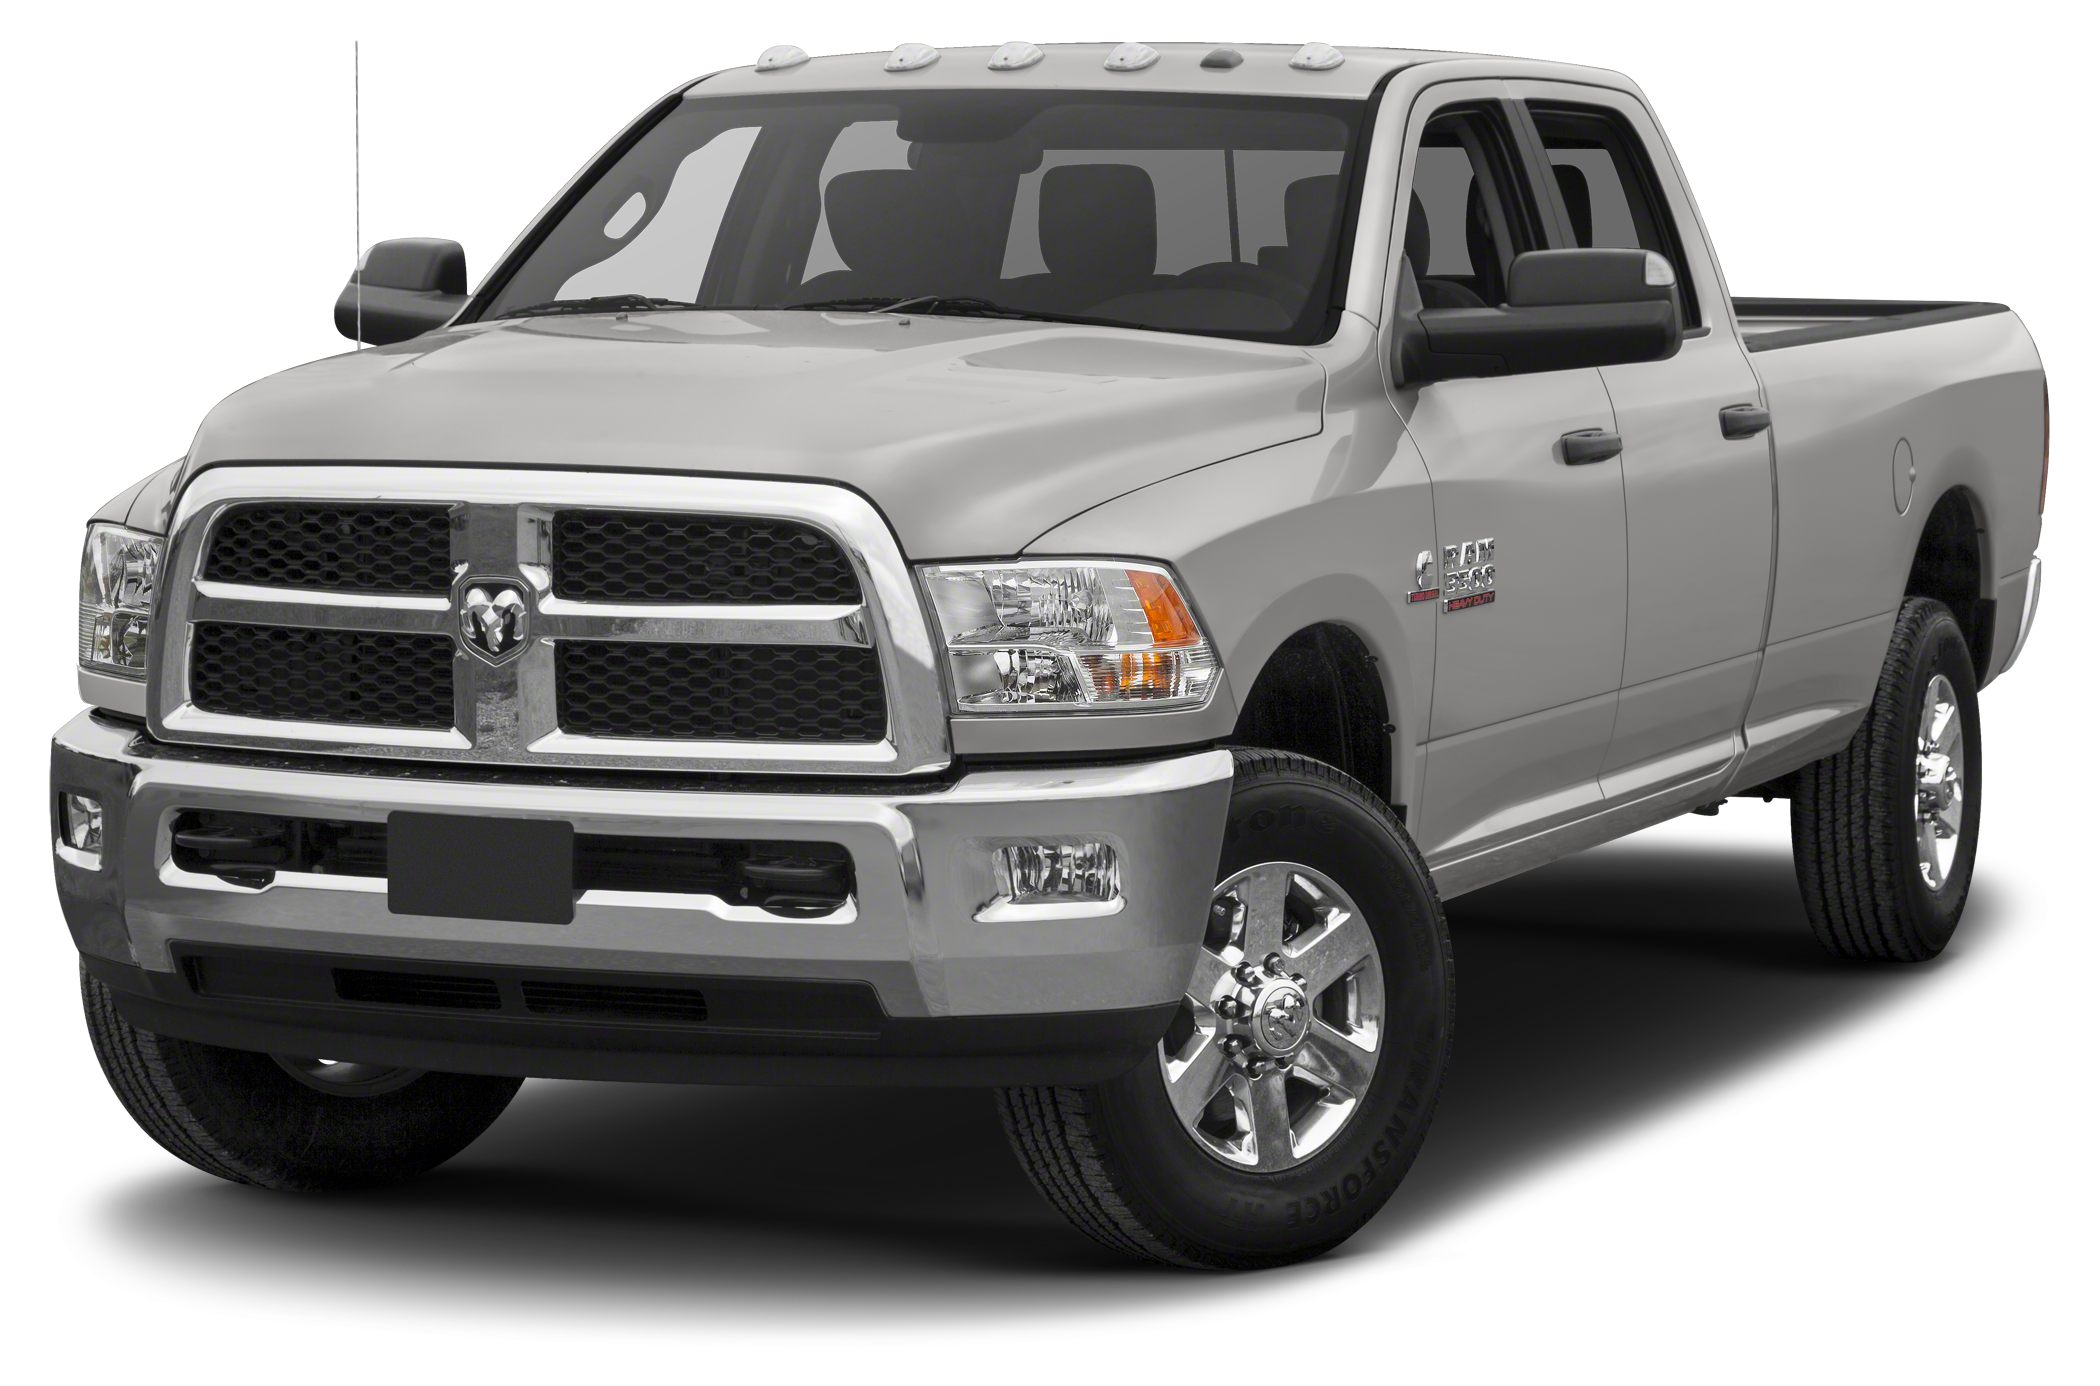 2015 Ram 3500 Tradesman 4x4 Crew Cab 149 5 In Wb Srw Specs And Prices